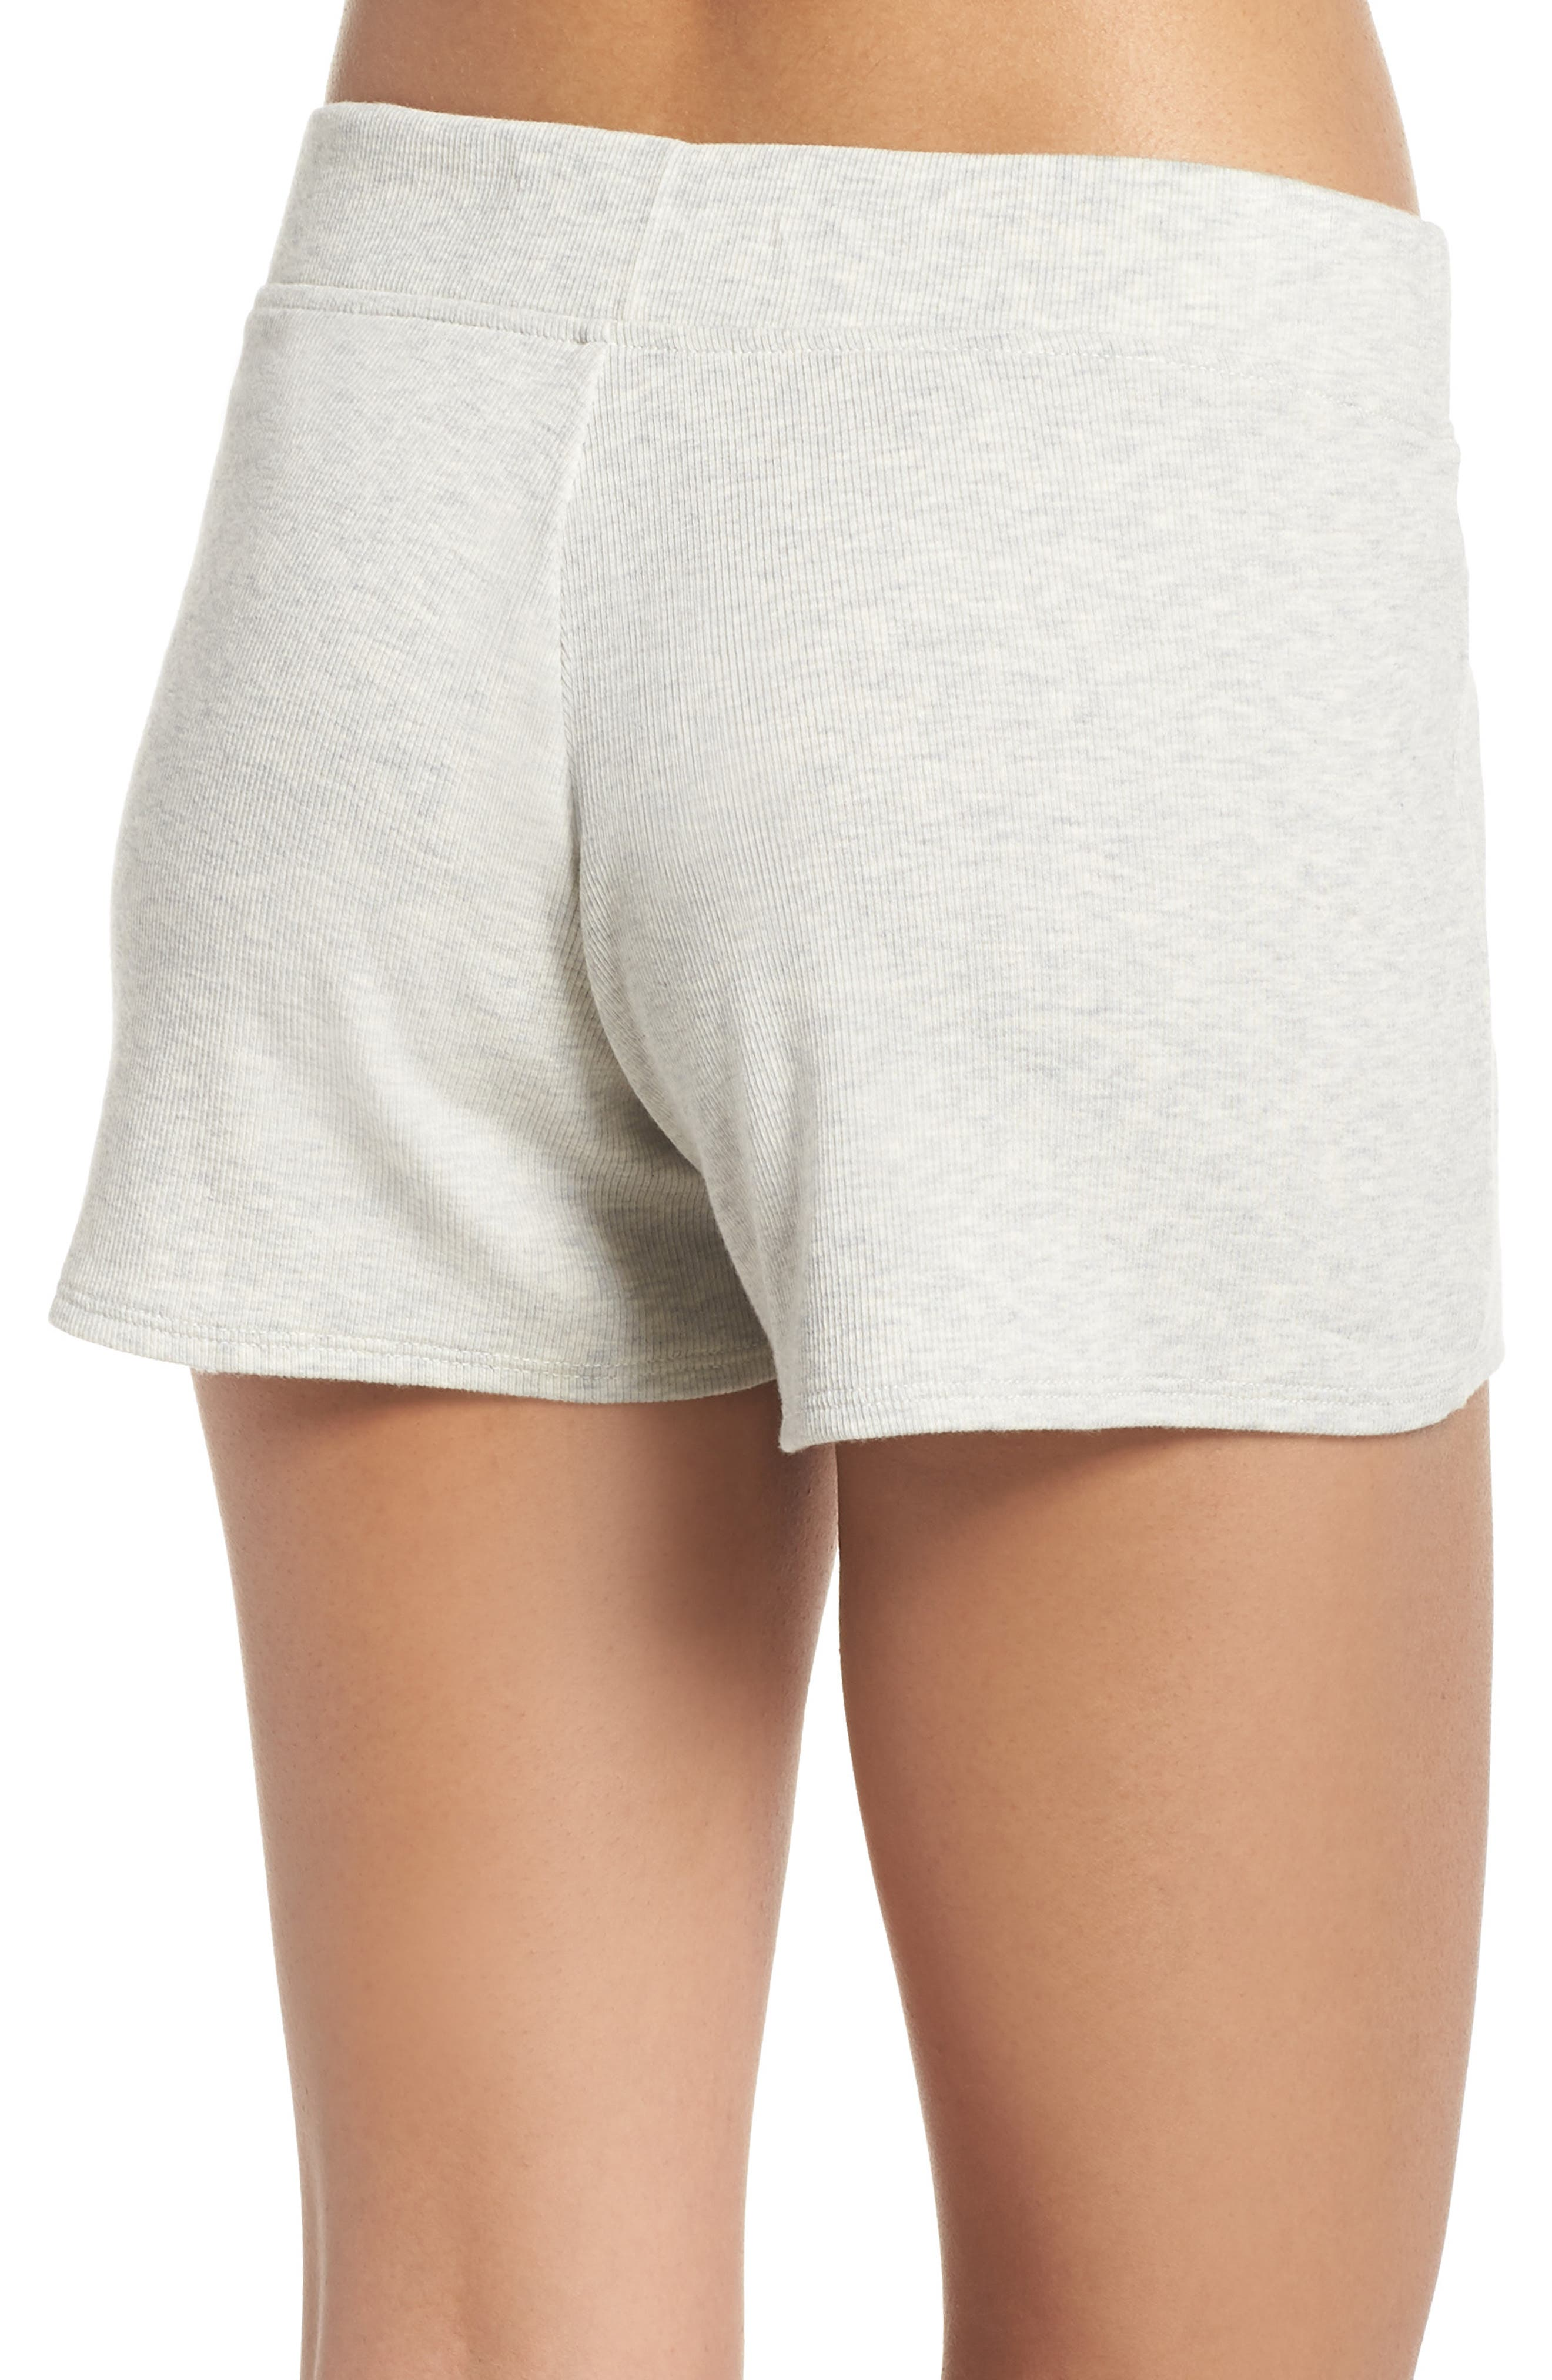 Daydream Lounge Shorts,                             Alternate thumbnail 2, color,                             Grey Heather